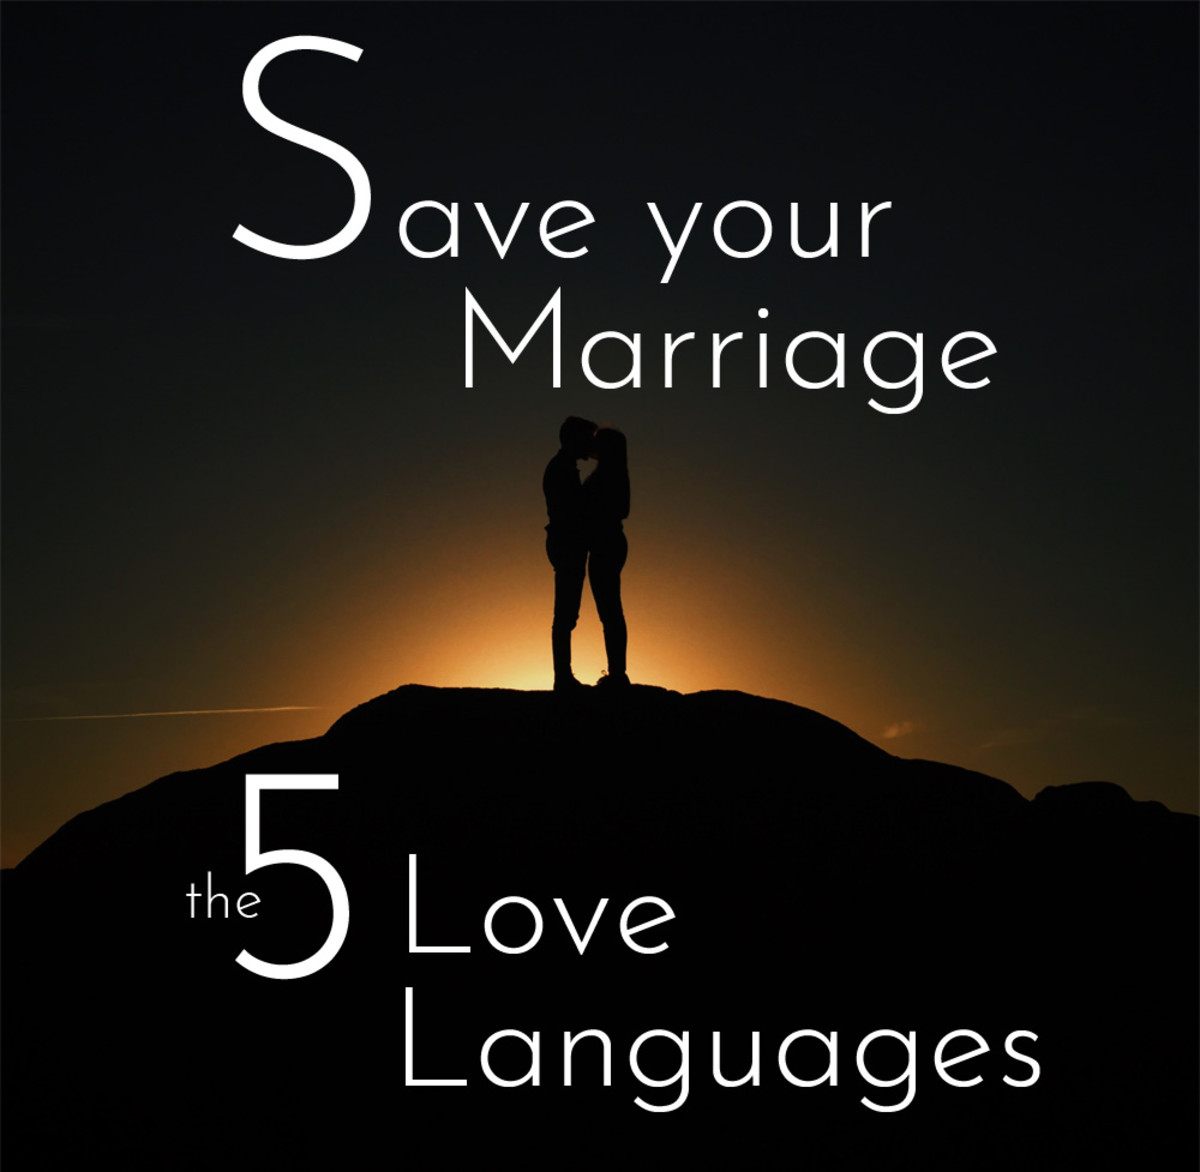 Can the 5 Love Languages Save Your Marriage?